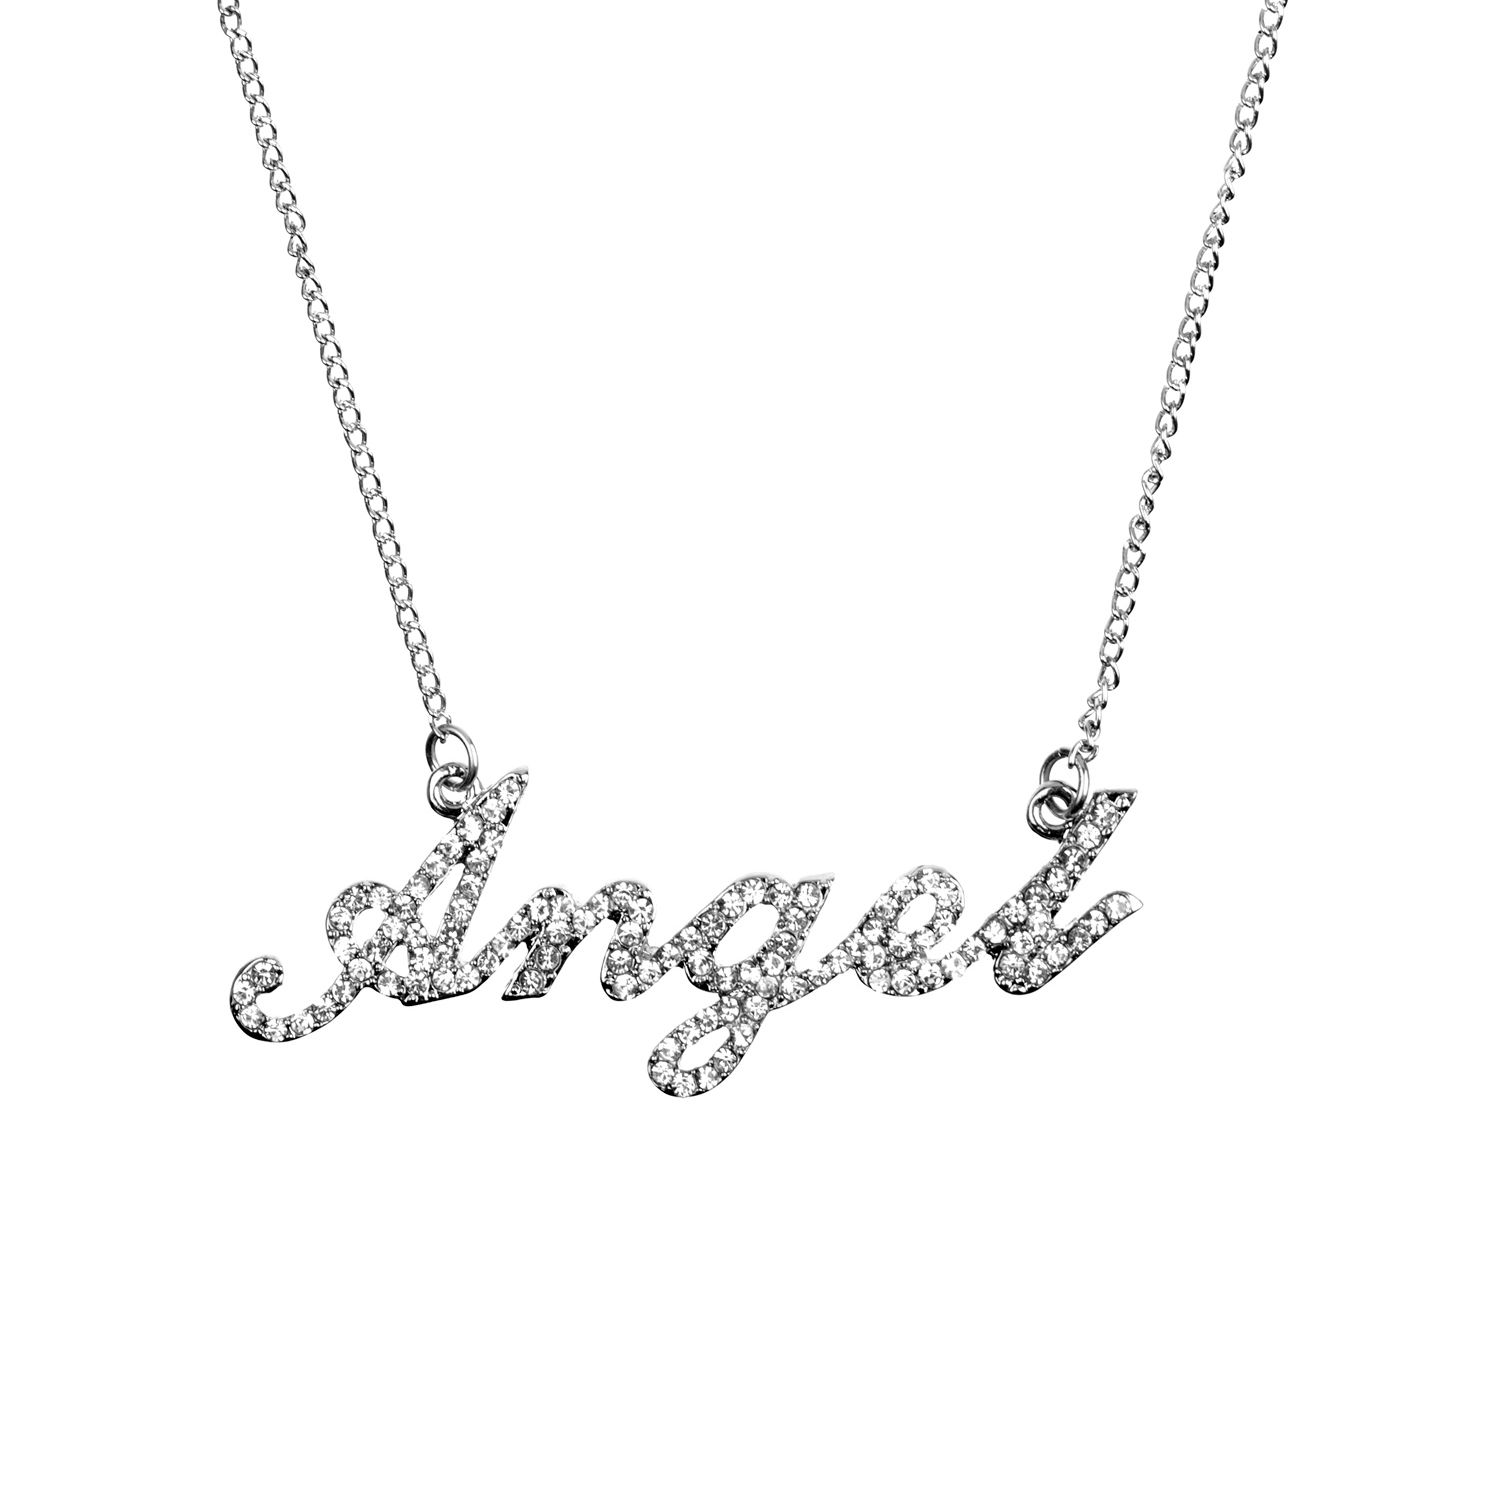 Mikey Angel necklace